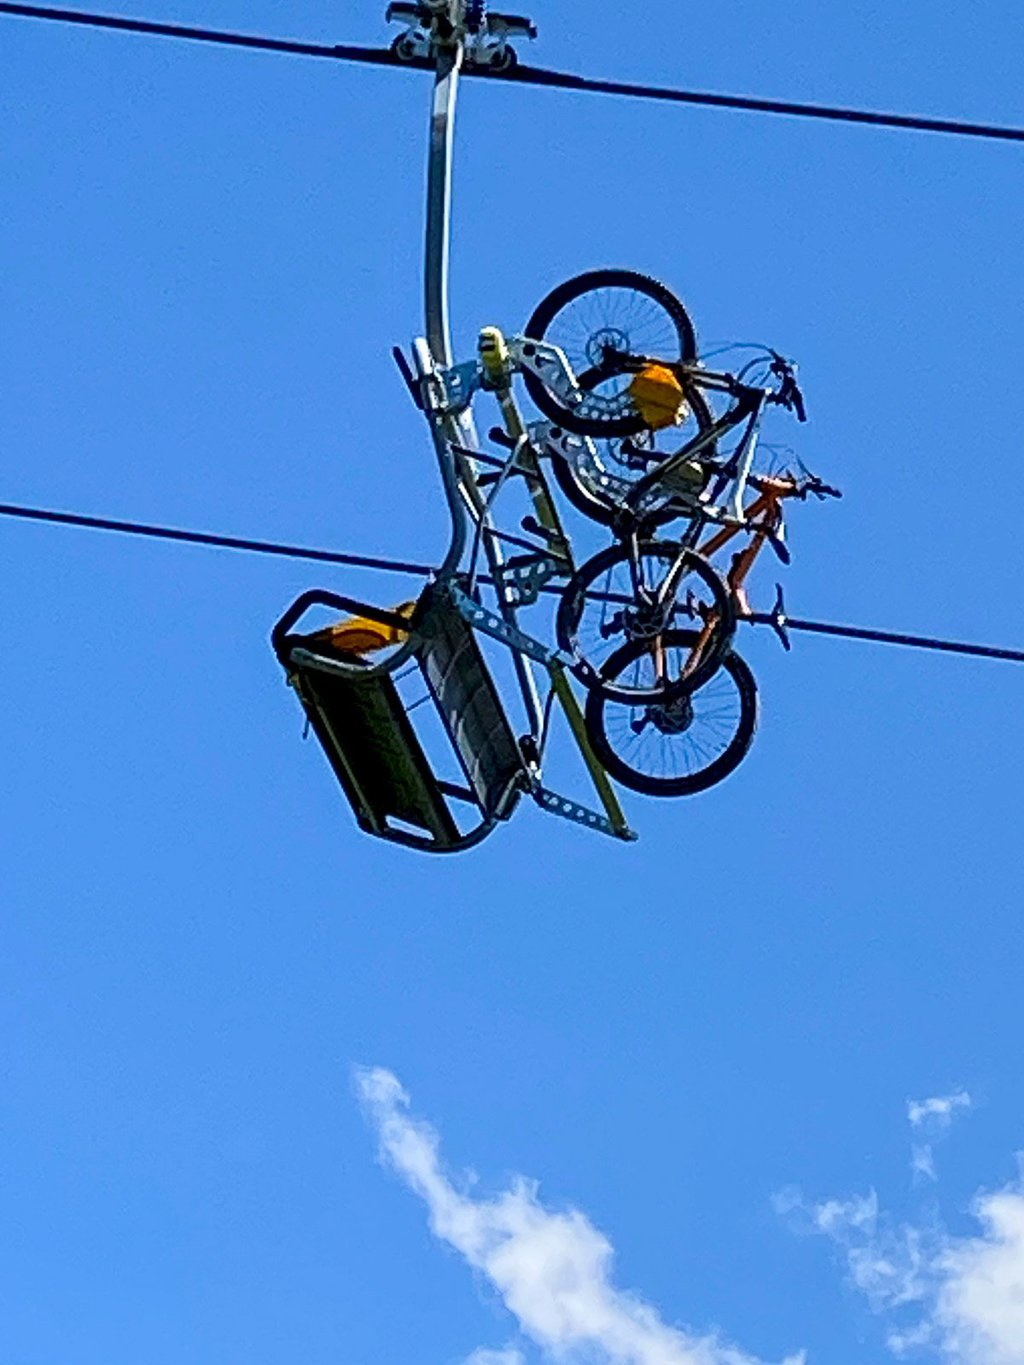 Vertical photo of mountain bikes being transported on a chair lift just above Le Tour, France.